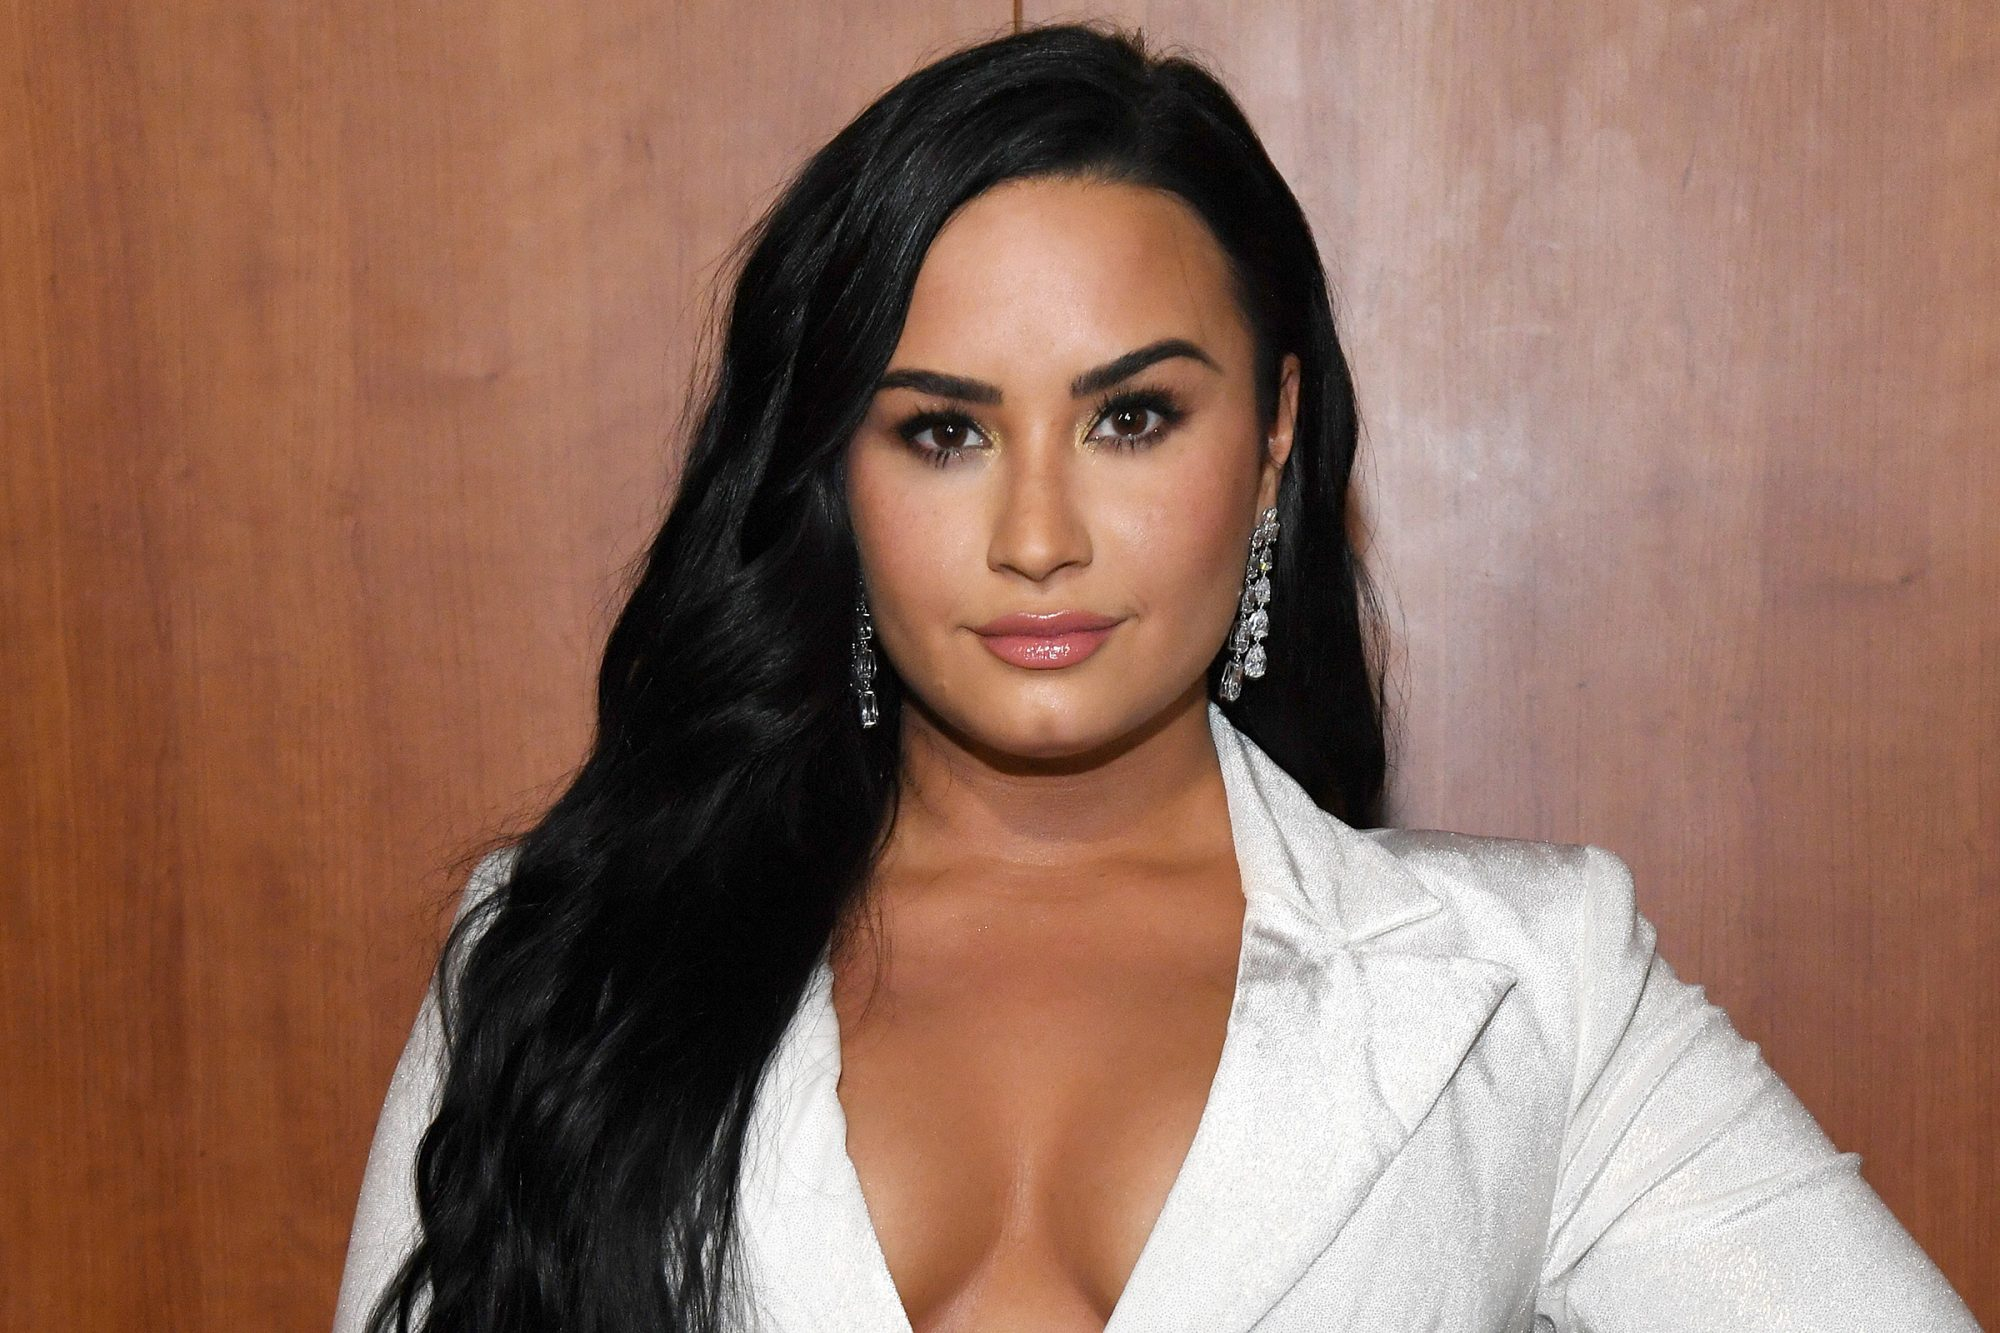 Demi Lovato Declares A New Album Dancing With The Devil The Art Of Starting Over Coming One Month From Now The Open News